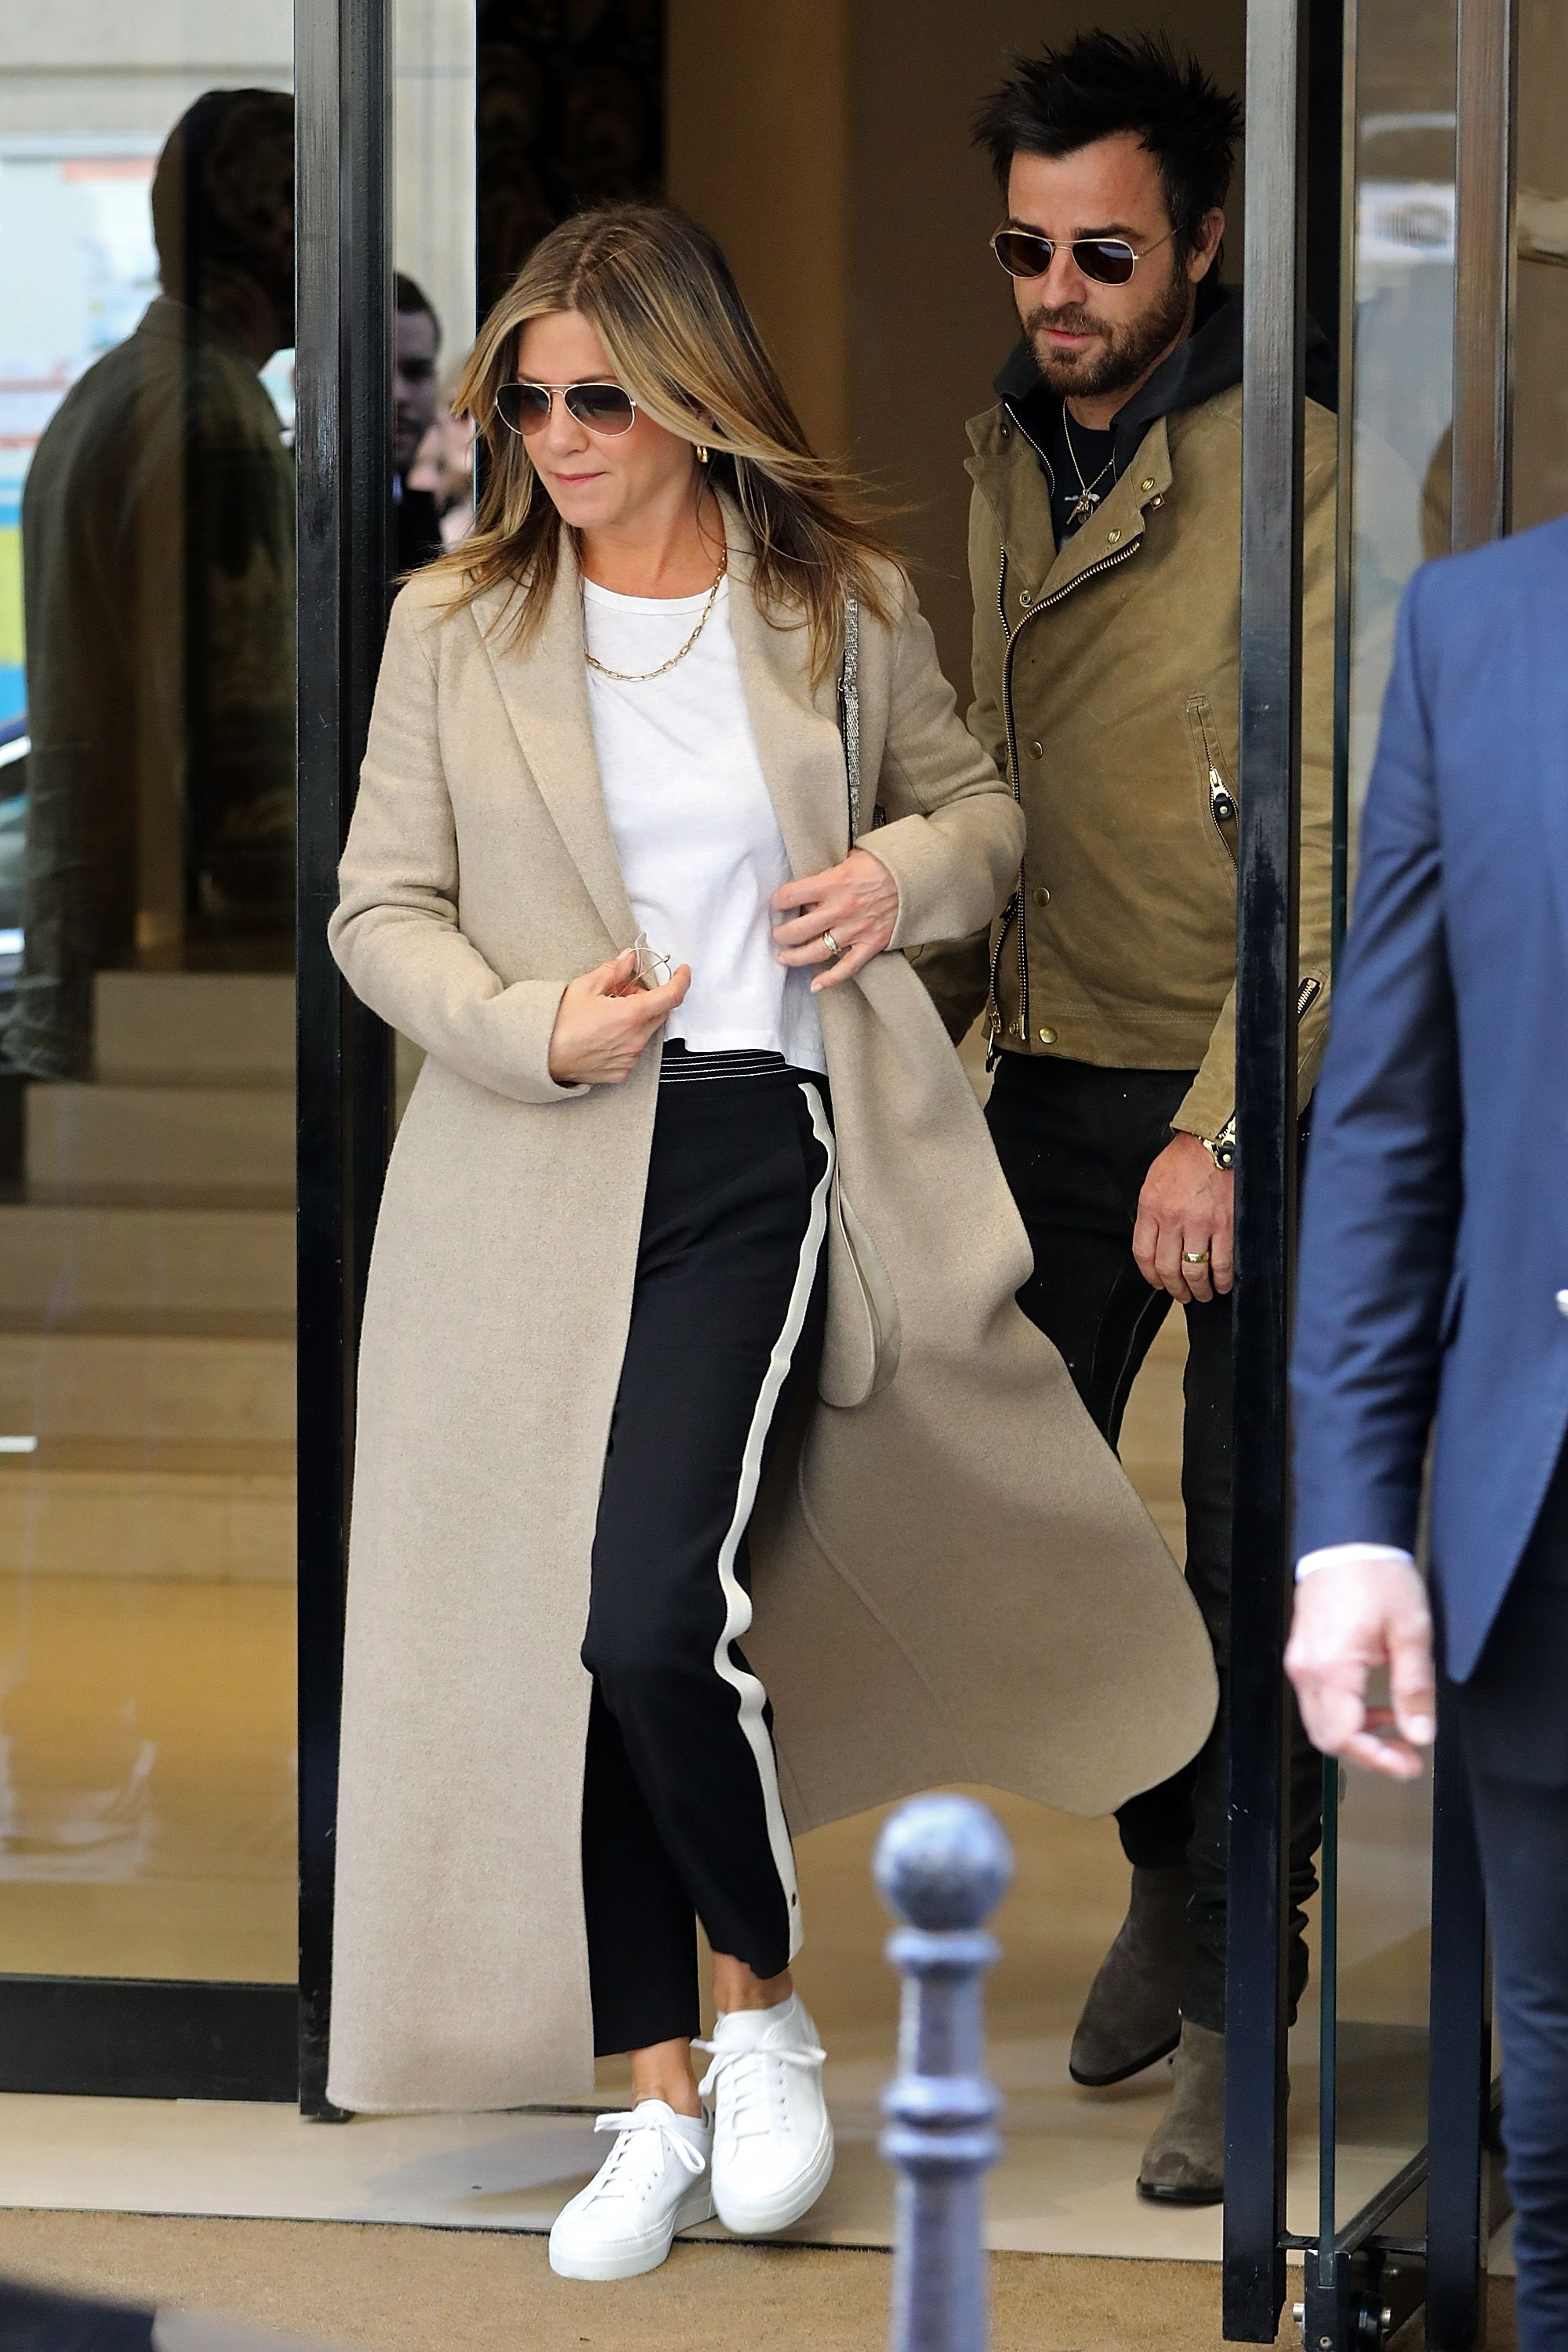 Jennifer Aniston Memorial Day Weekend is all about comfort, so if you plan to live in sweats or track pants all weekend, we completely understand. For cases when you do leave your apartment (to get coffee), cover up with a long beige coat.